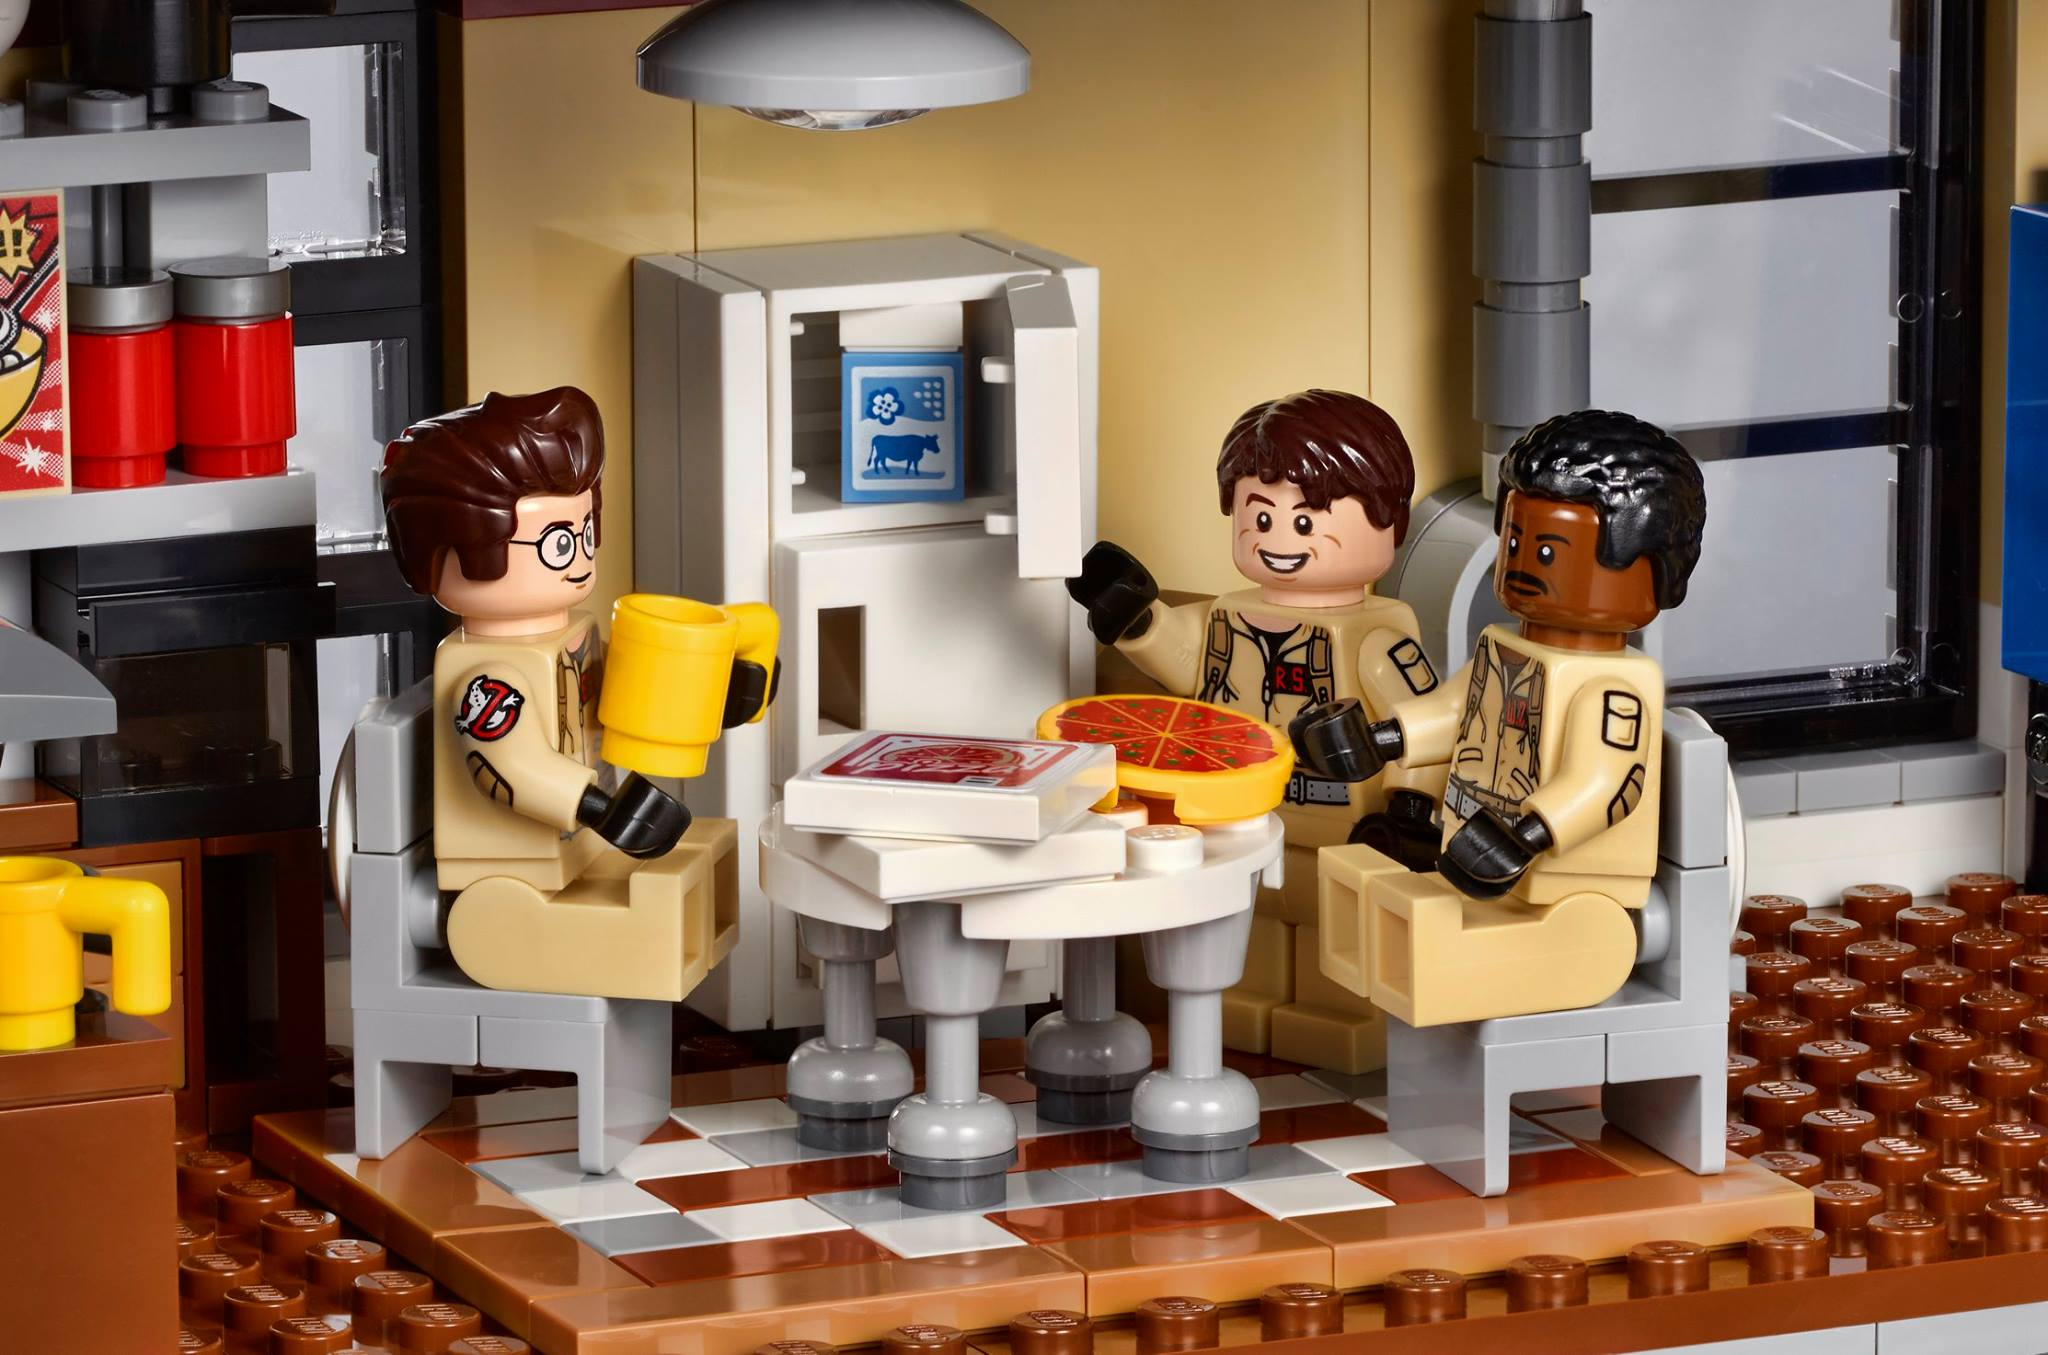 Lego Ghostbusters firehouse kitchen on firehouse landscaping, firehouse interior design, firehouse architecture, firehouse food, firehouse photography, firehouse decor, firehouse renovation, firehouse bathroom, apparel designs, firehouse bed, murphy's designs, firehouse doors, firehouse art,